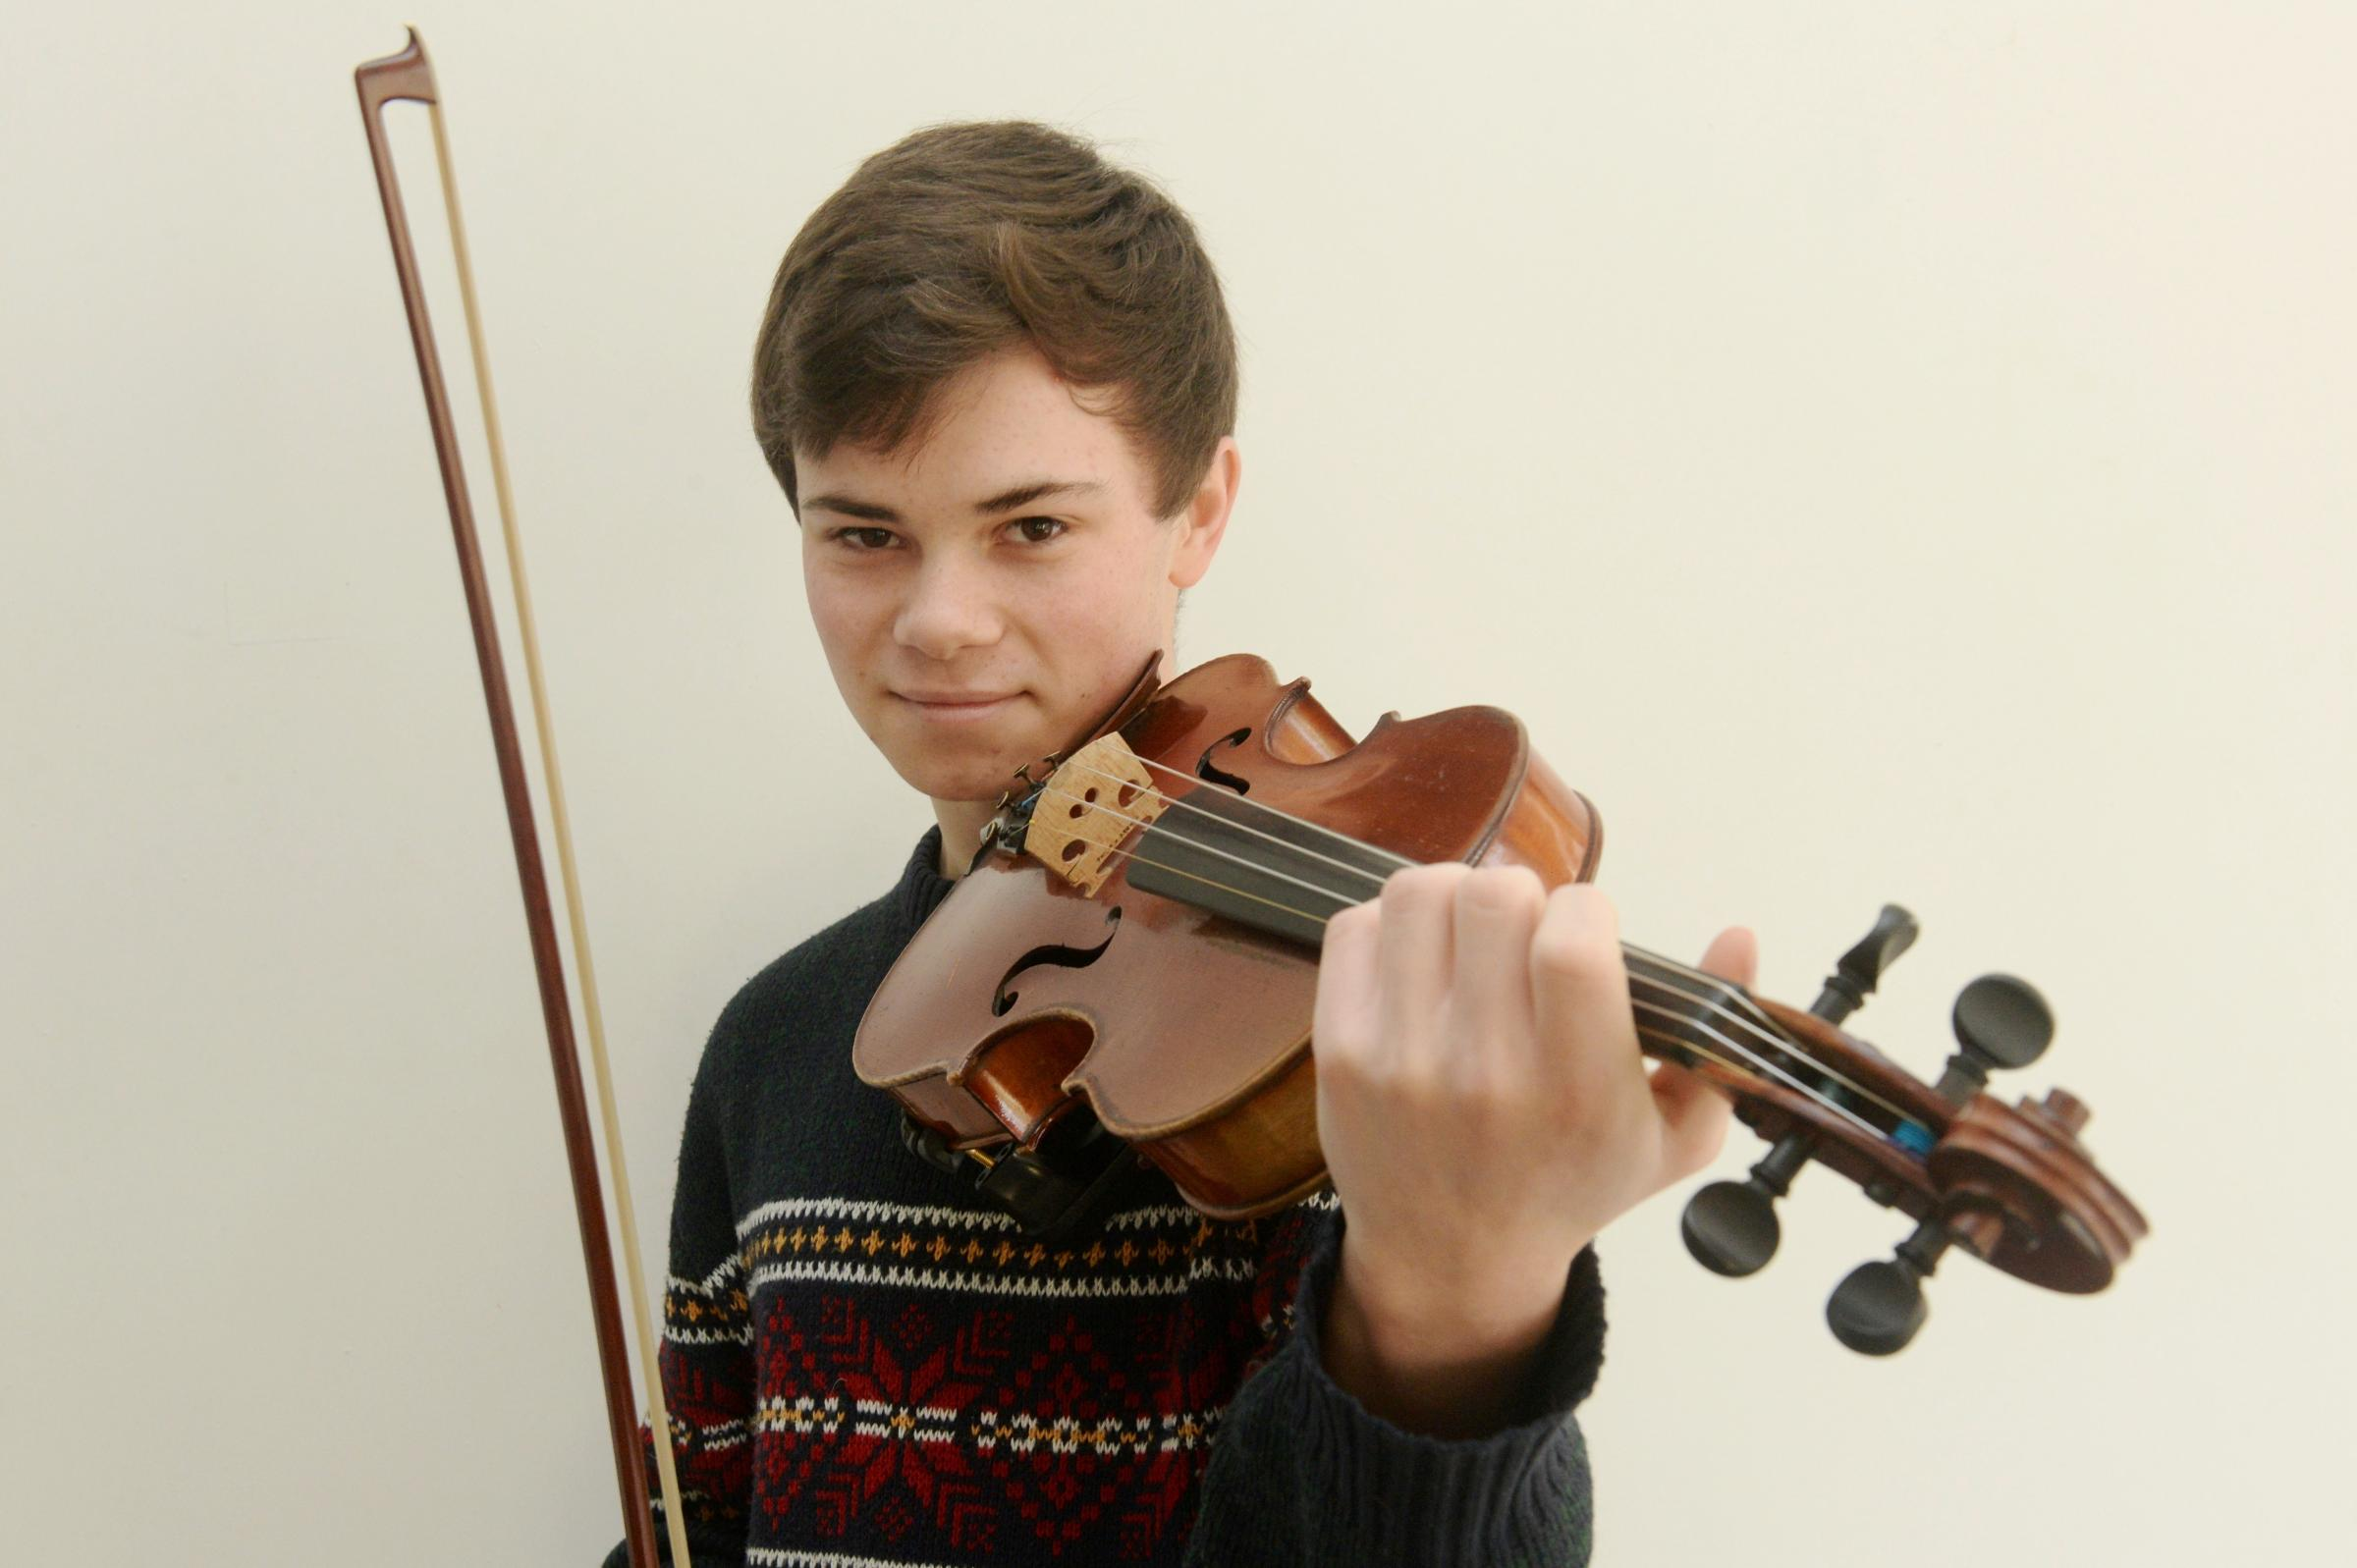 Chepstow teen to study at top music school